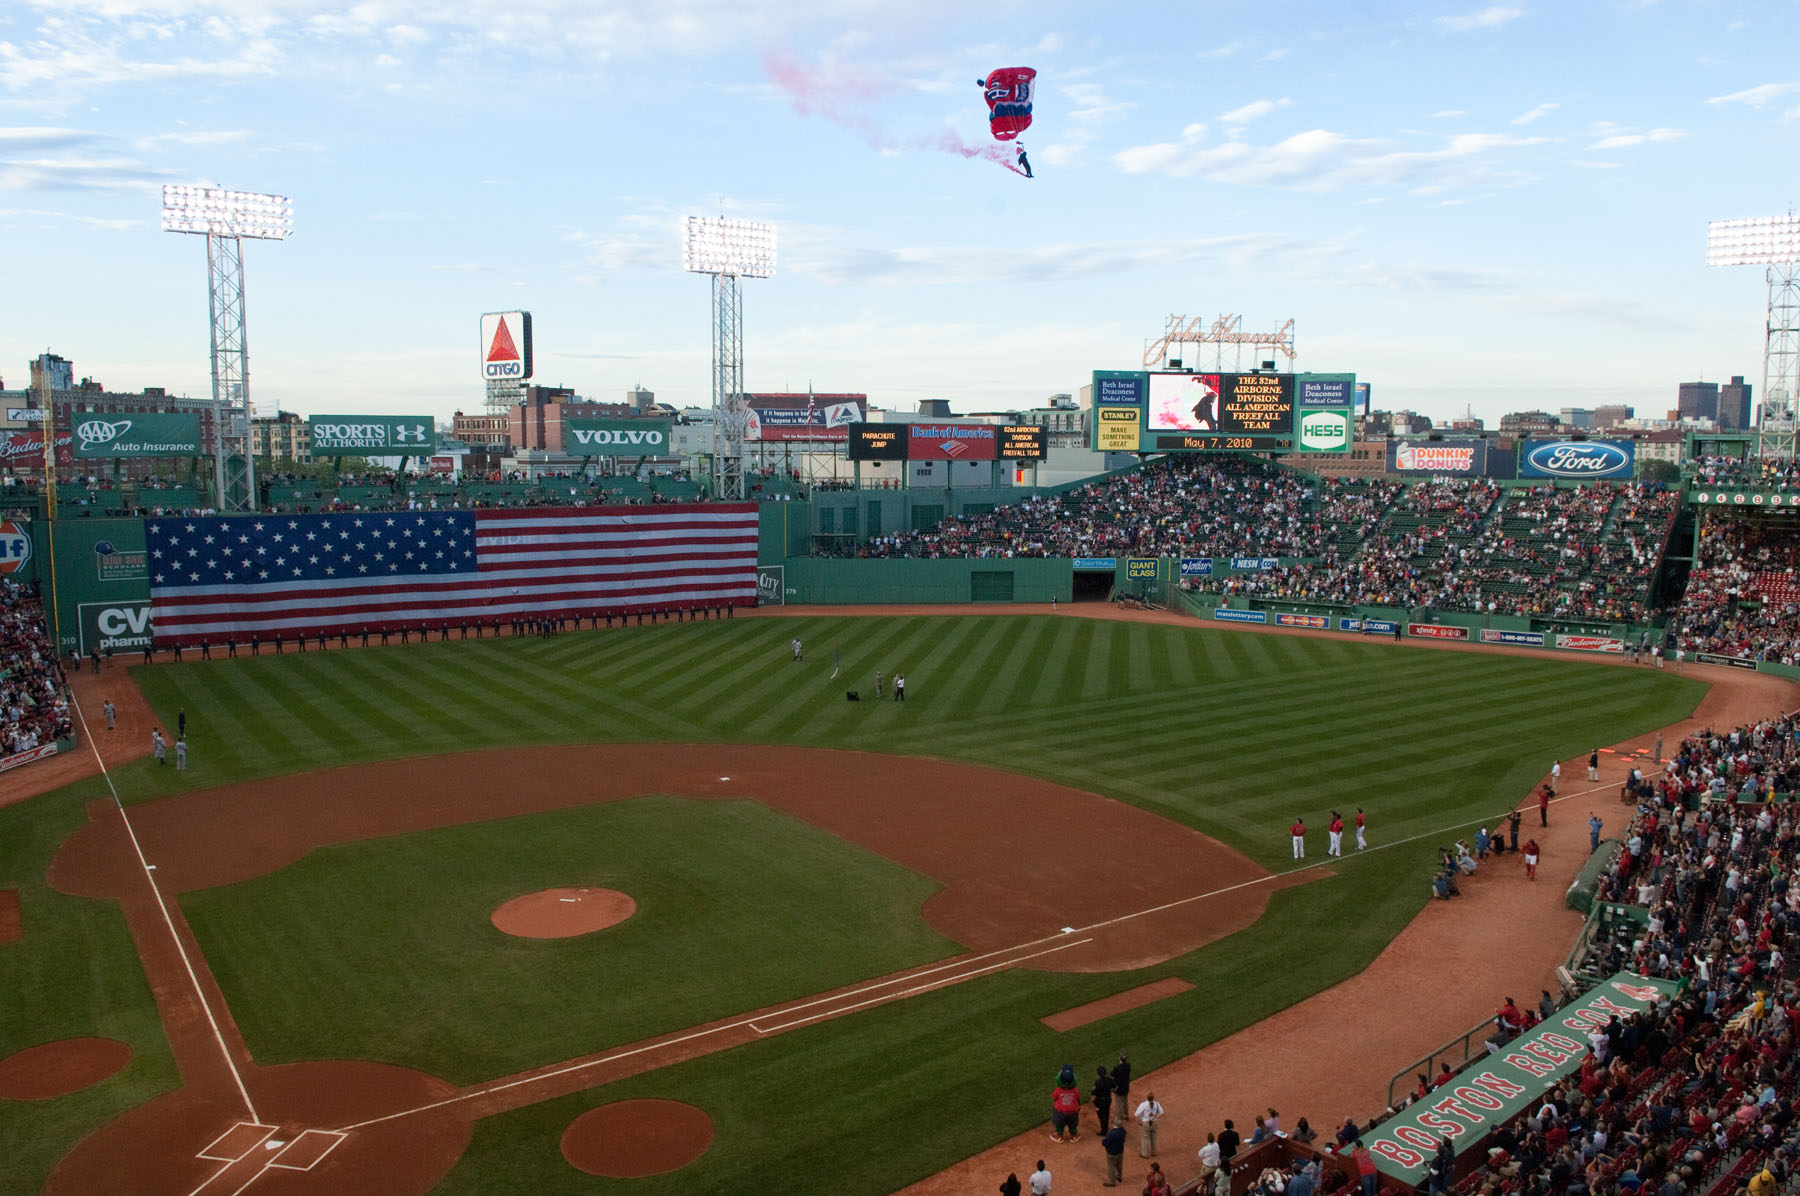 Flag Detail at Fenway Park